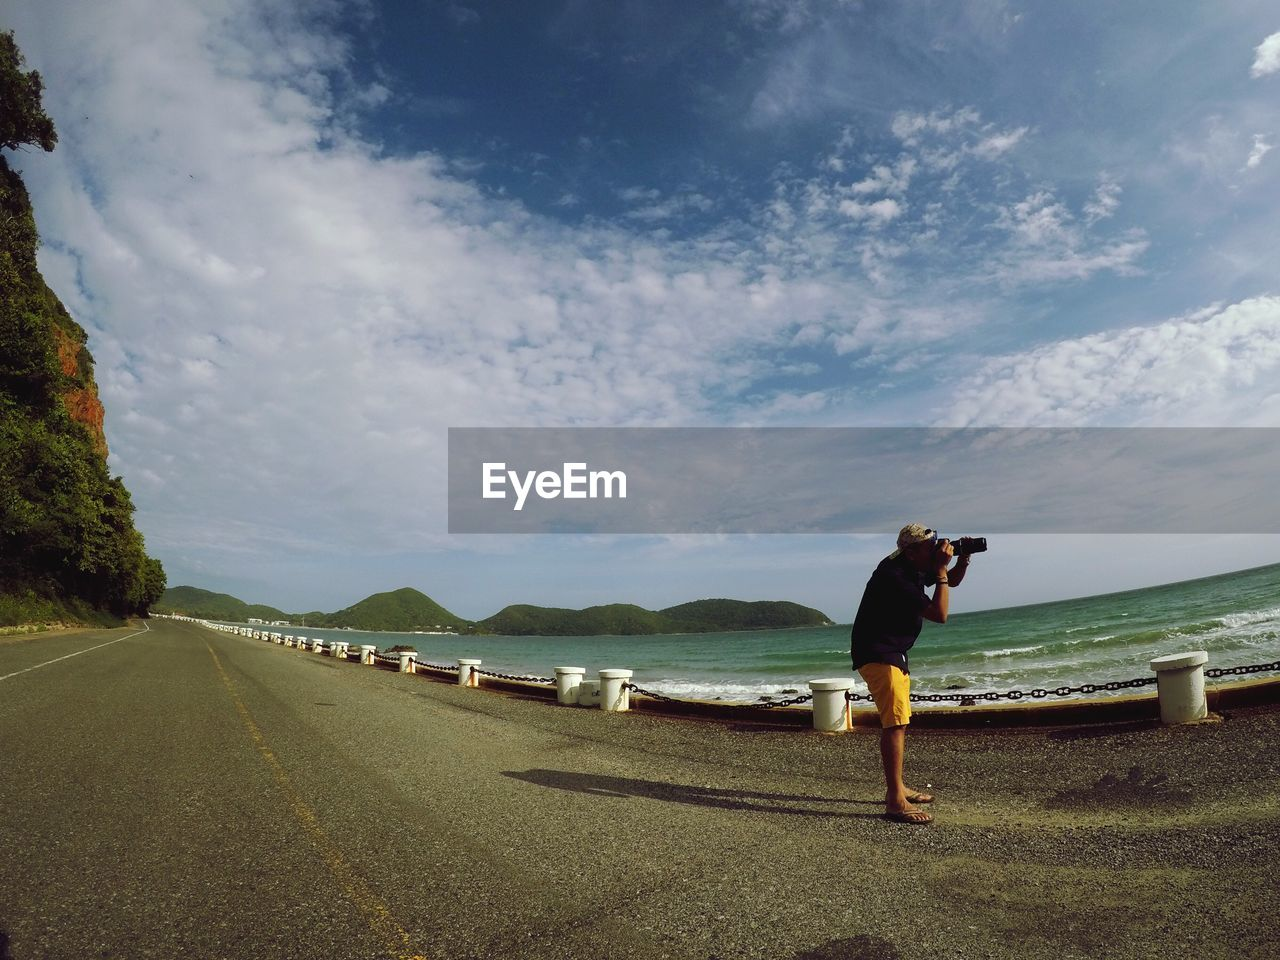 Man photographing through camera while standing at beach against sky